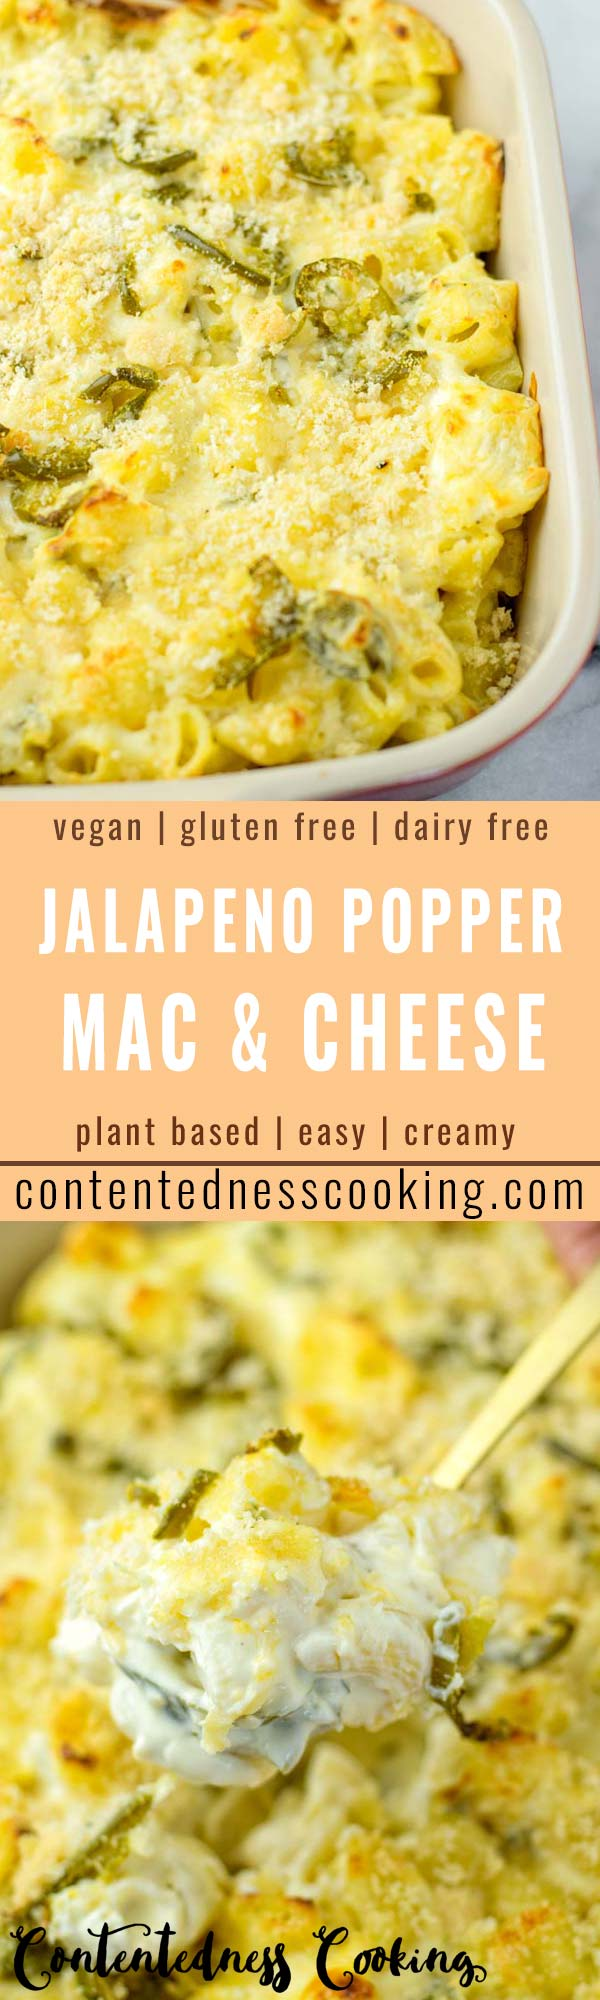 This Jalapeno Popper Mac and Cheese is the ultimate comfort food and super easy to make in under 30 minutes! The whole family will love the favorite in no time, such a keeper for dinner, lunch, meal prep and so much more. No one would ever taste it is vegan. So rich, cheesy and creamy taste like the real deal if not better.